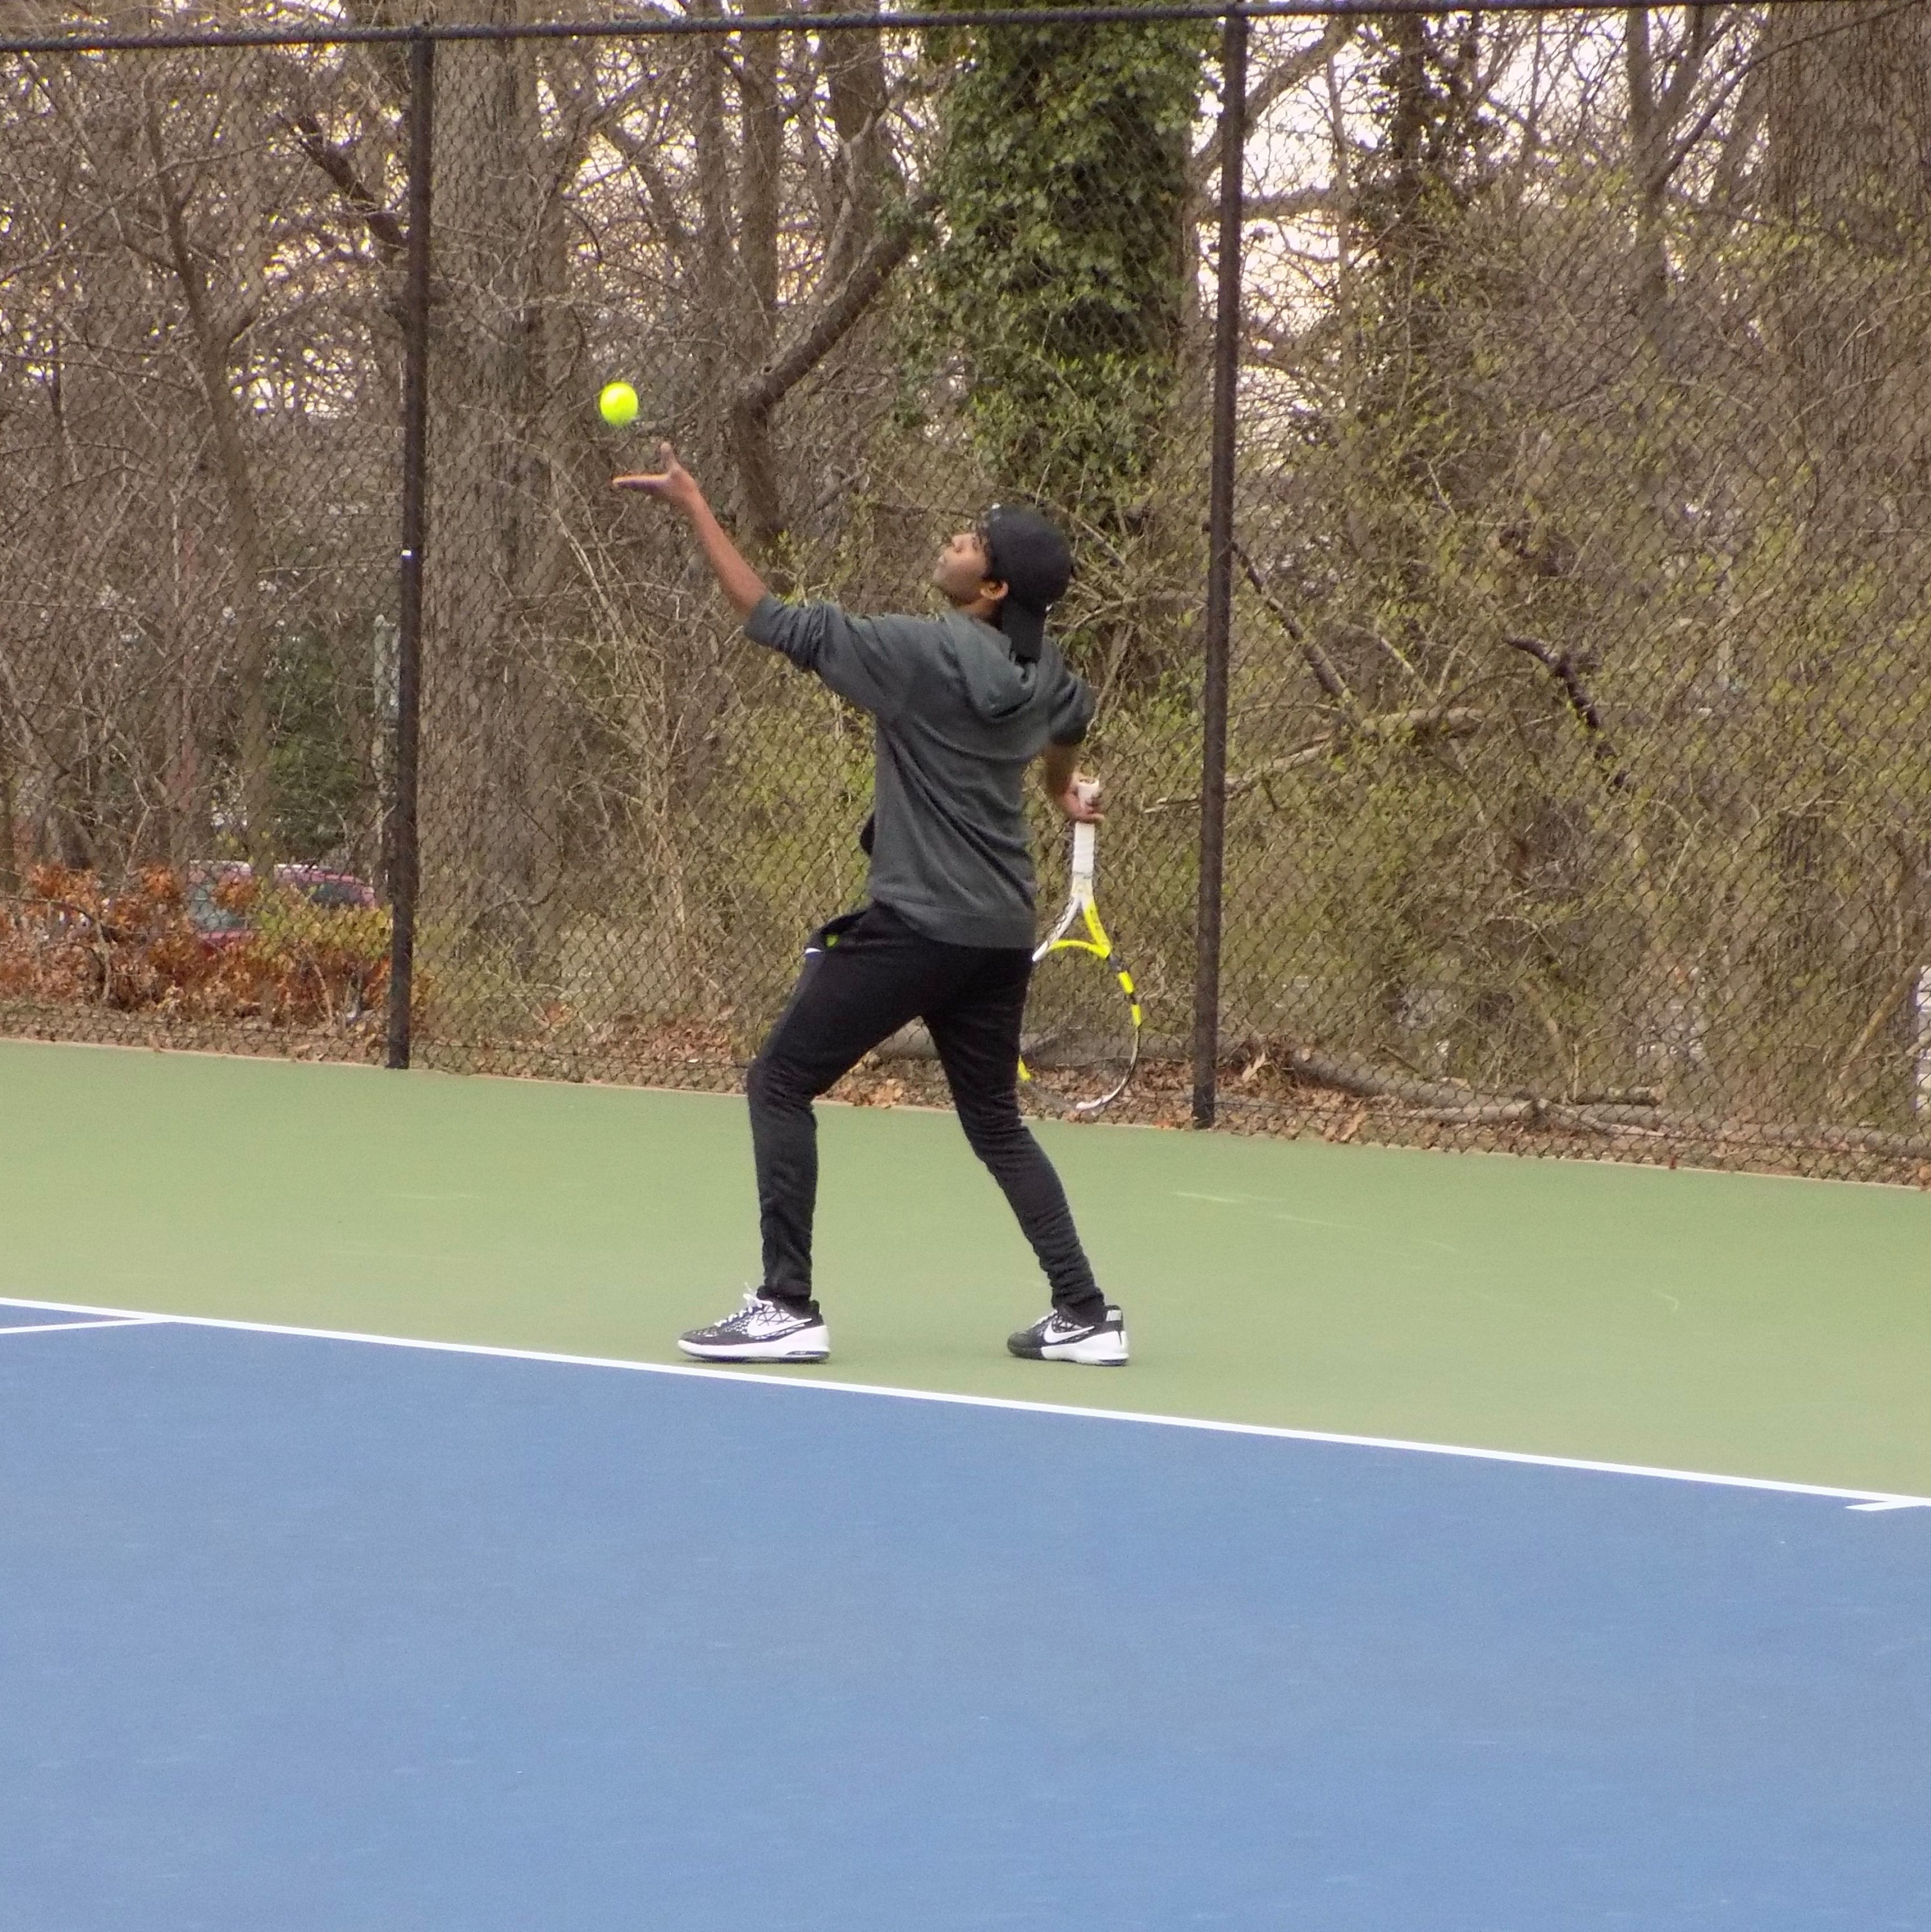 A Temple University Tennis Club member about to serve.